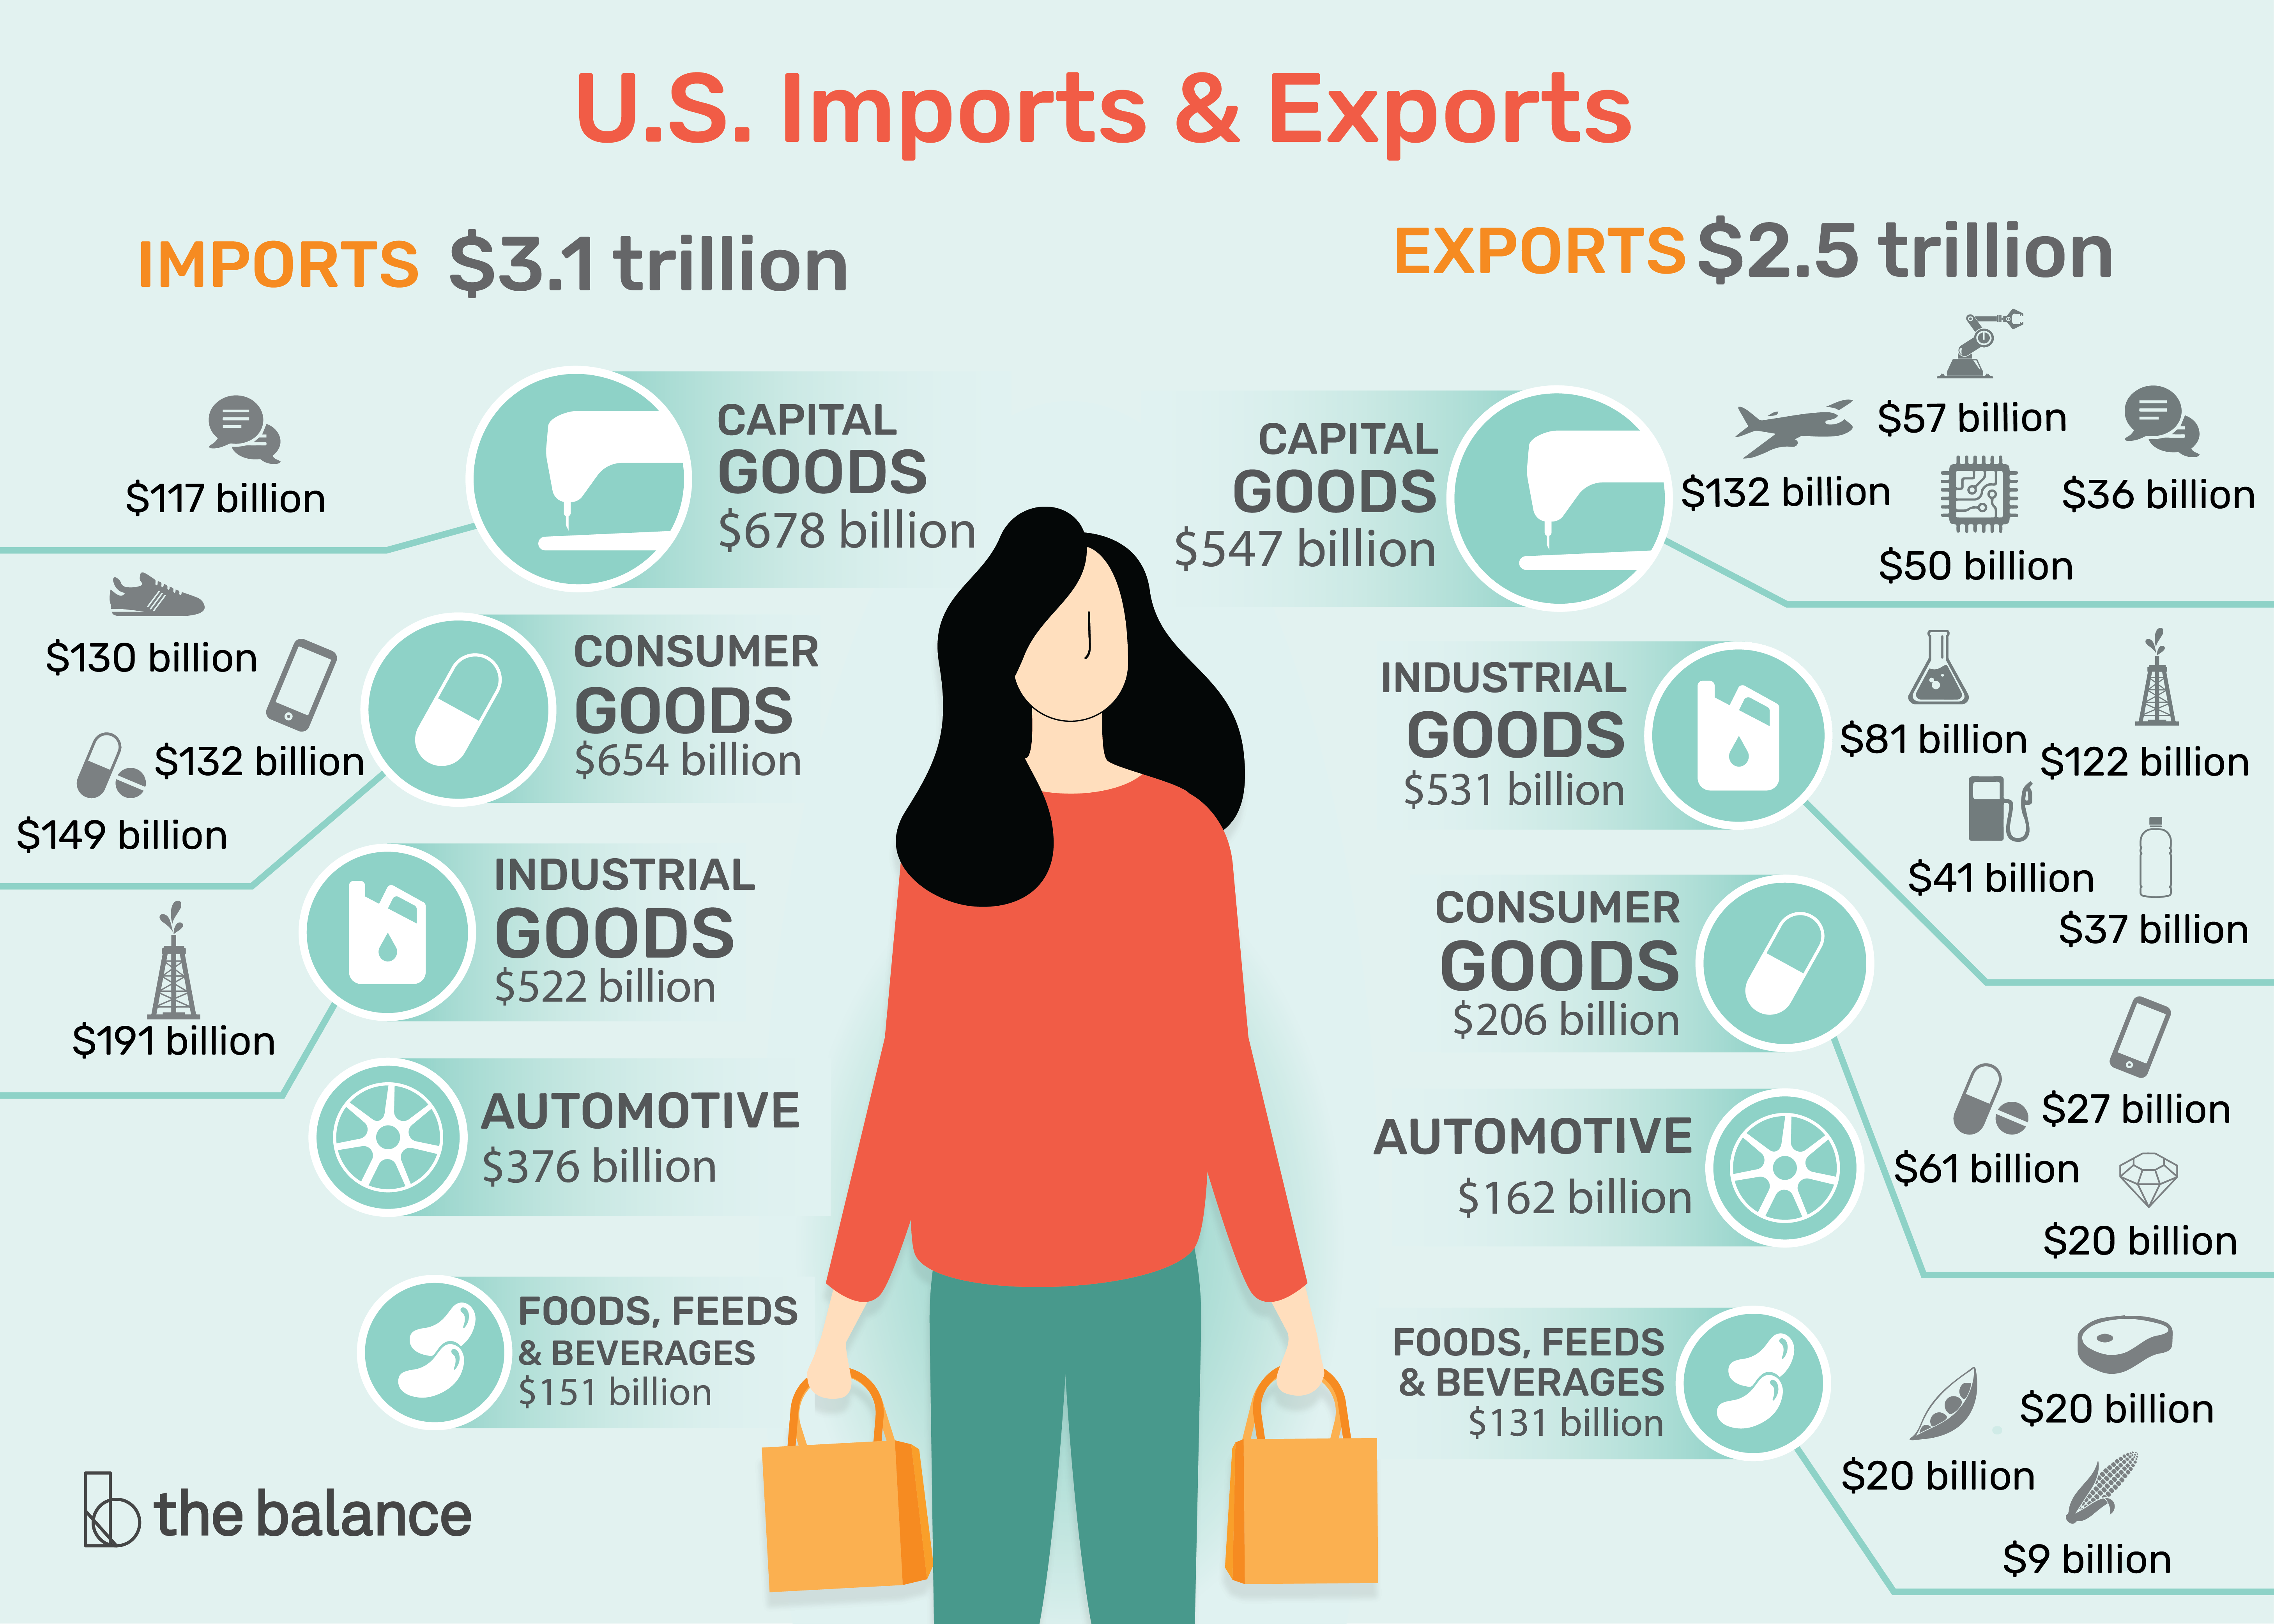 US Imports and Exports with Components and Statistics